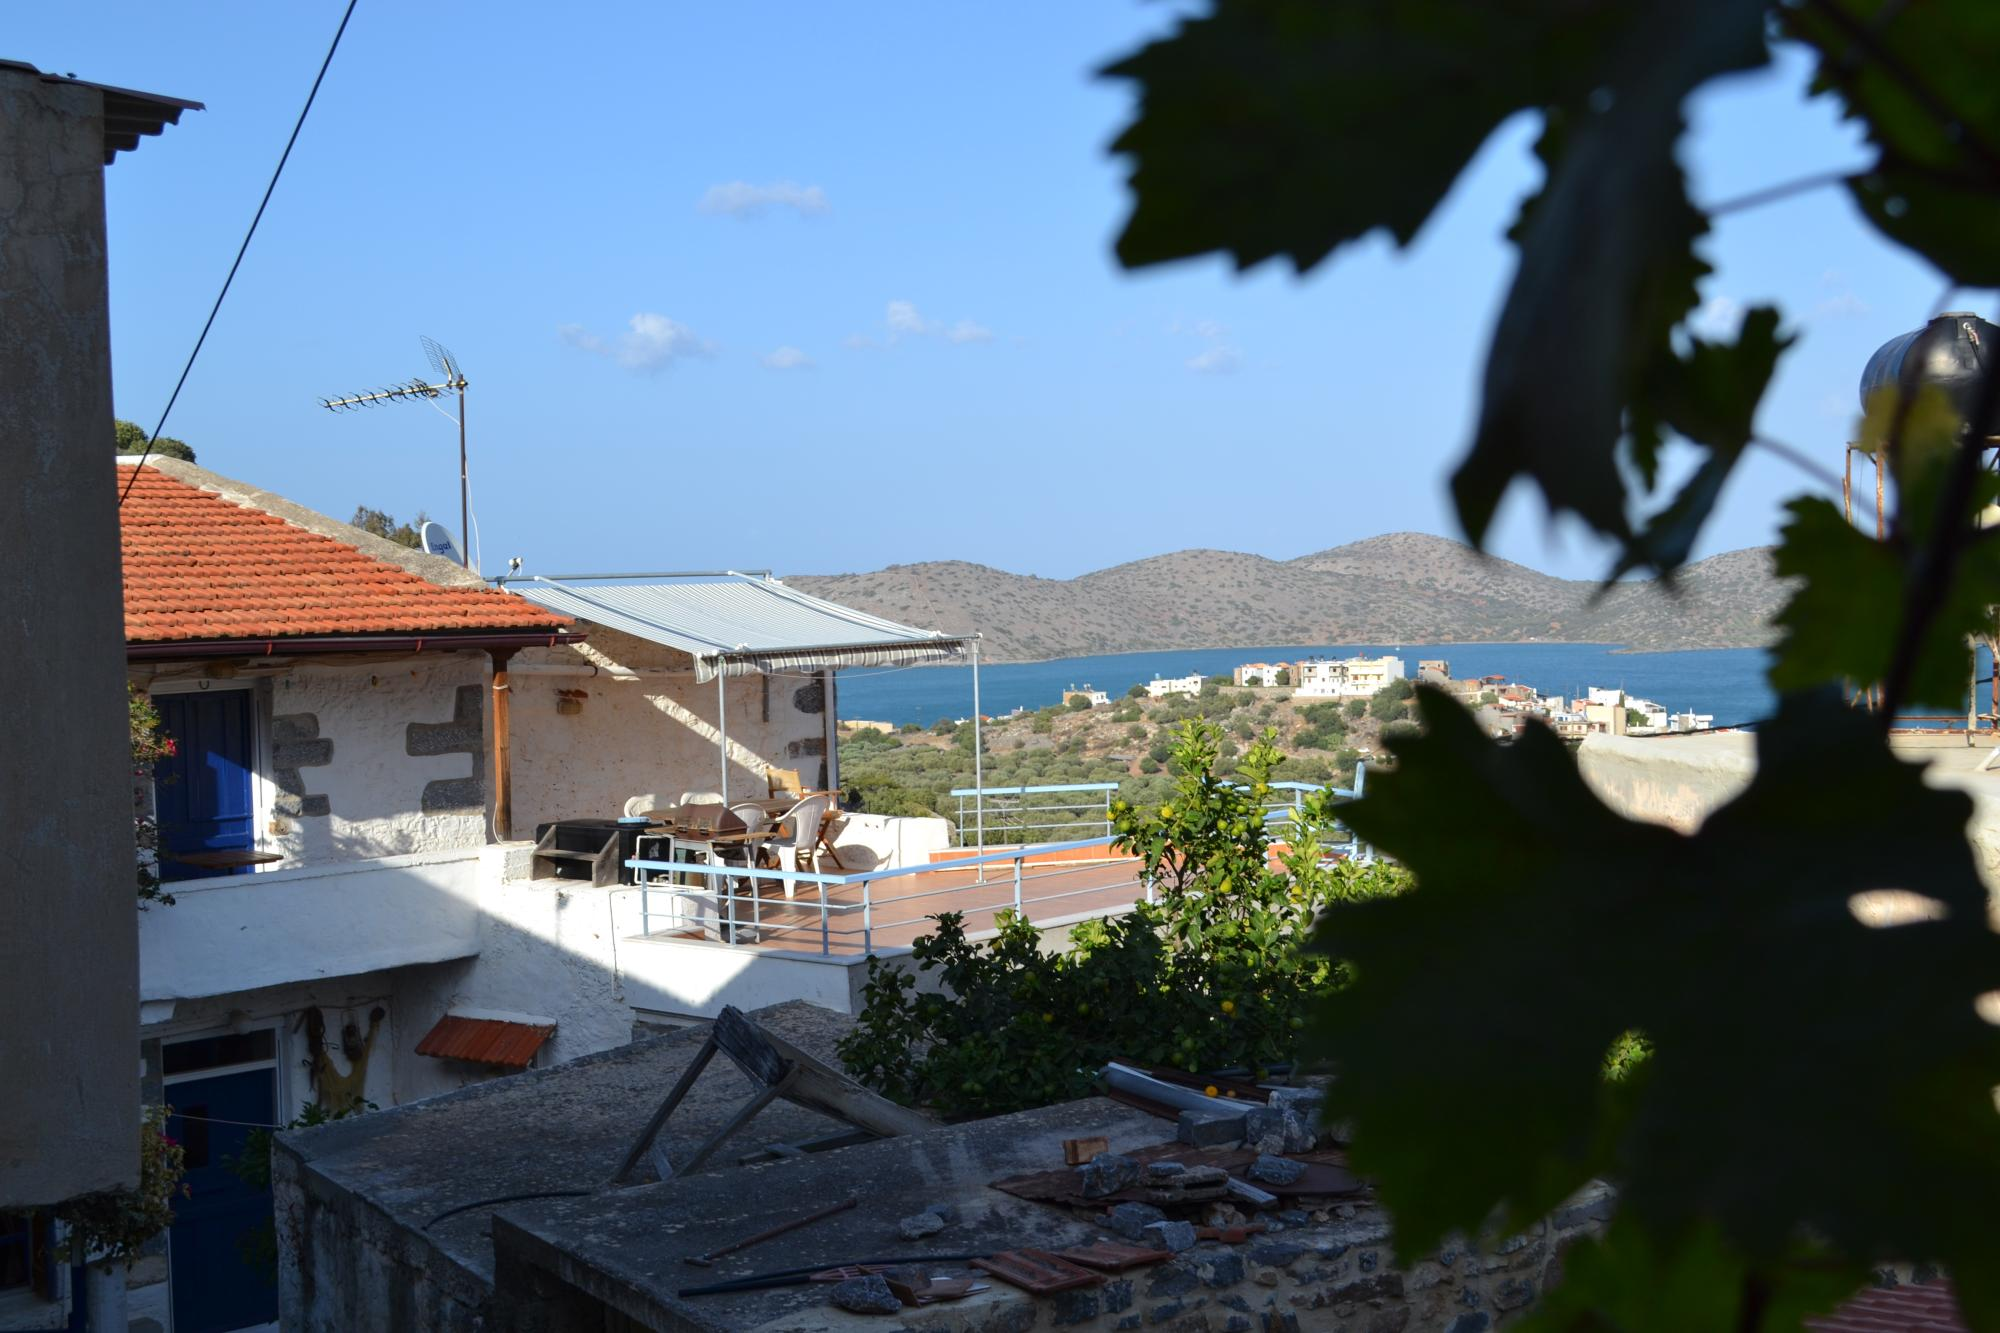 3 bed cottage with amazing sea views and nice courtyard.  Elounda.